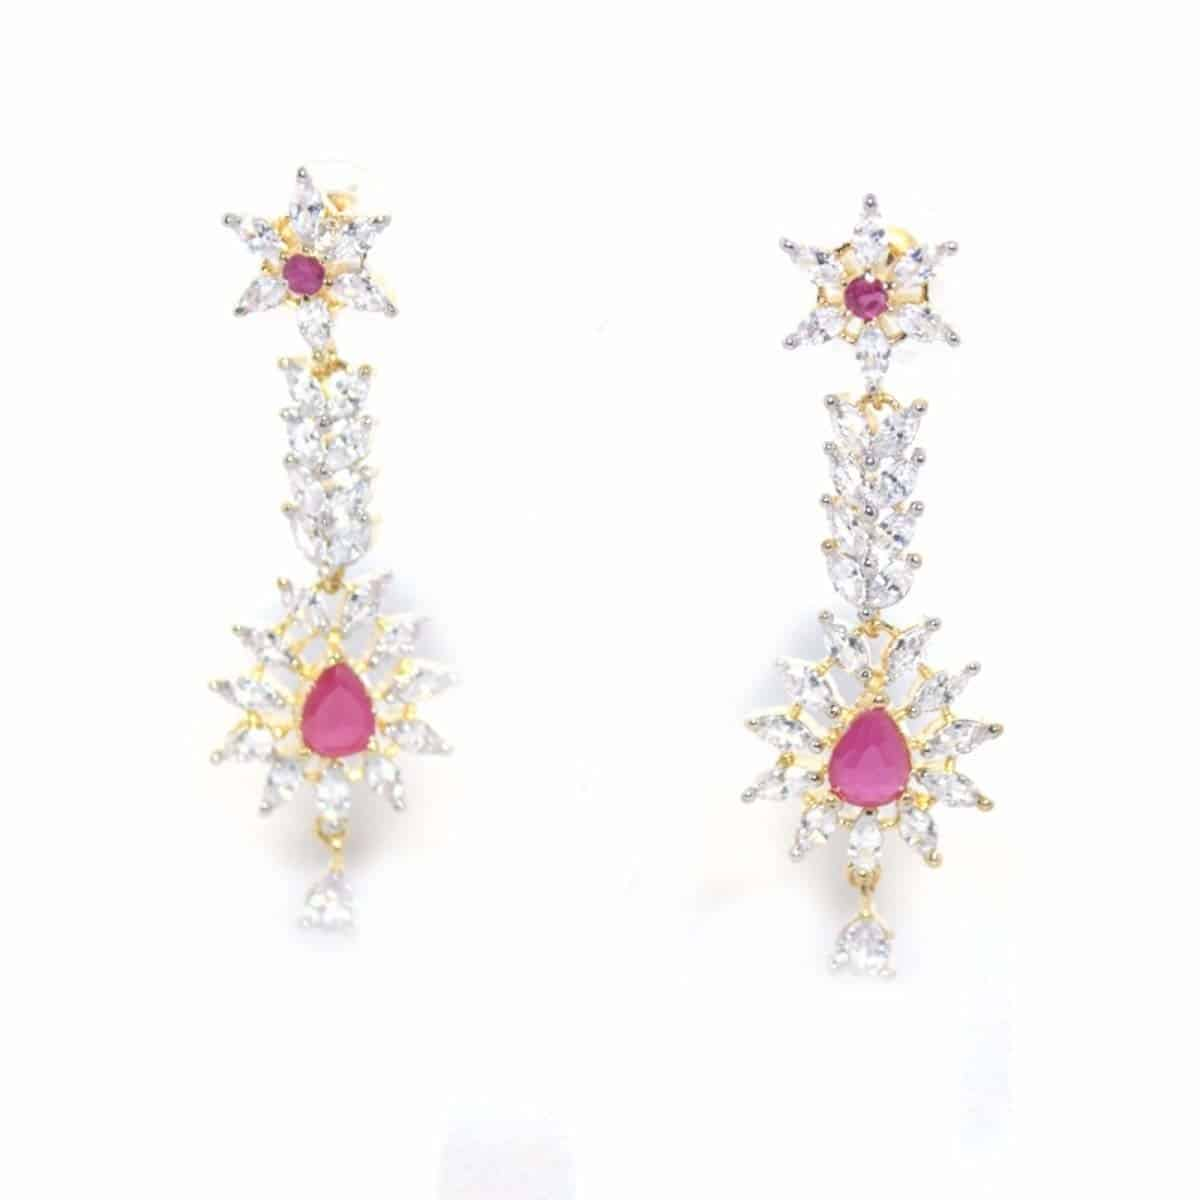 Jewelo Silver Color Alloy Cross In Cut Star Cut Centre Big Stone Hanging Partywear Earings for Women.  https://www.amazon.in/dp/B07DN6SZSG  #earrings #earringsforwomen #partywearearring